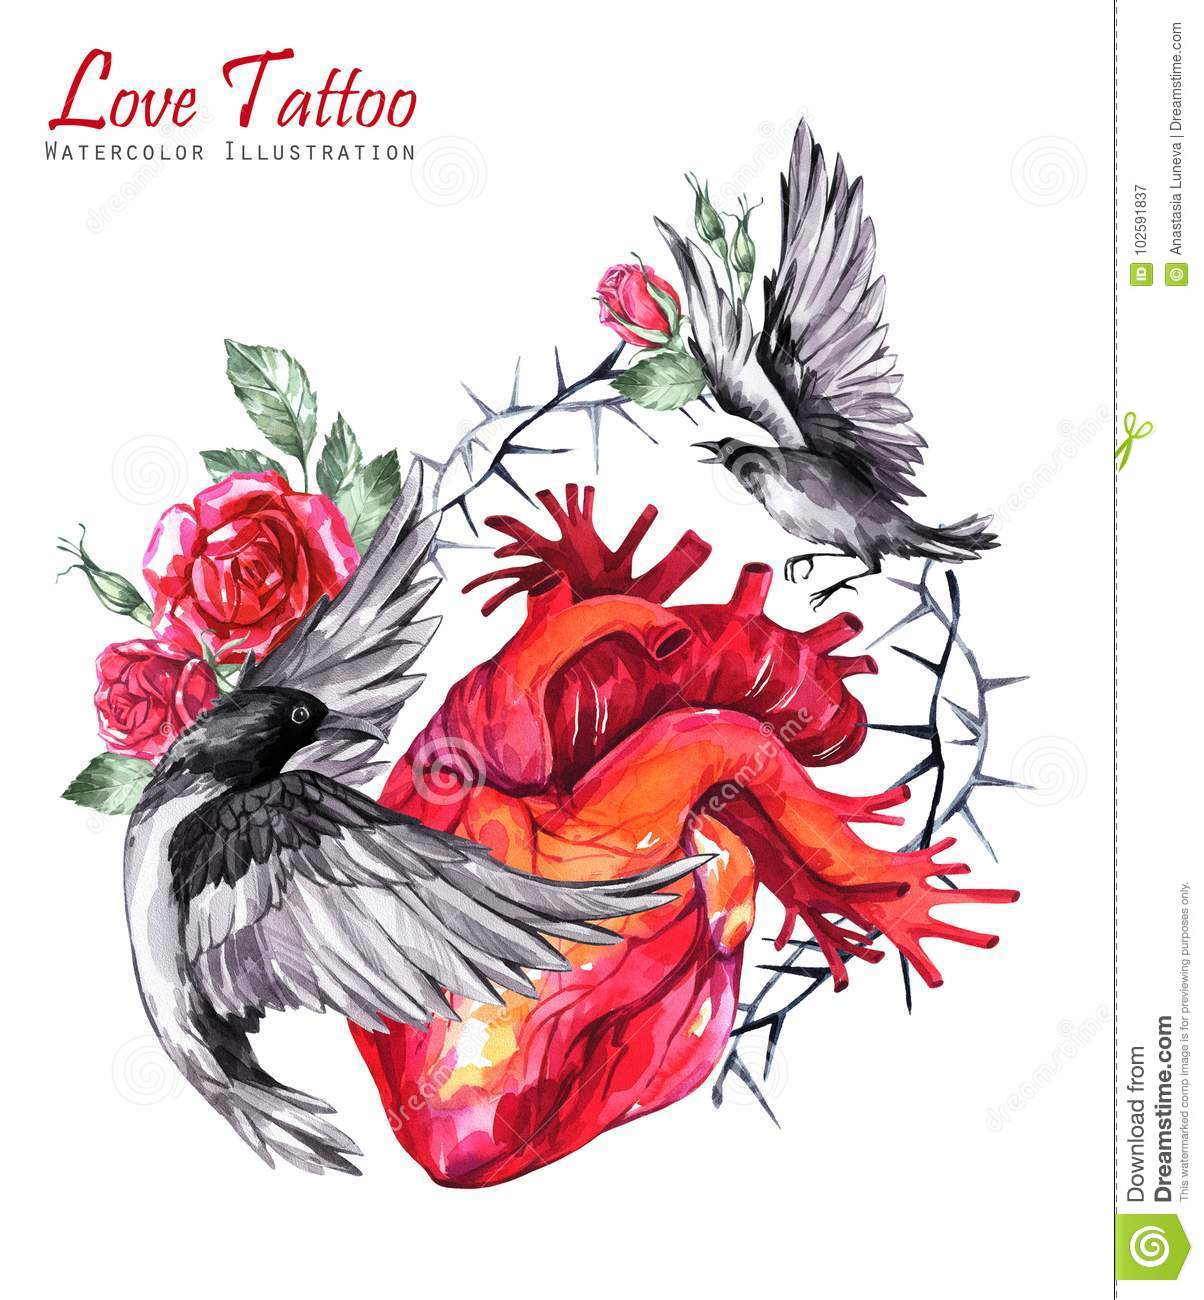 Watercolor Anatomic Heart With Sketches Of Roses Thorns Leaves And